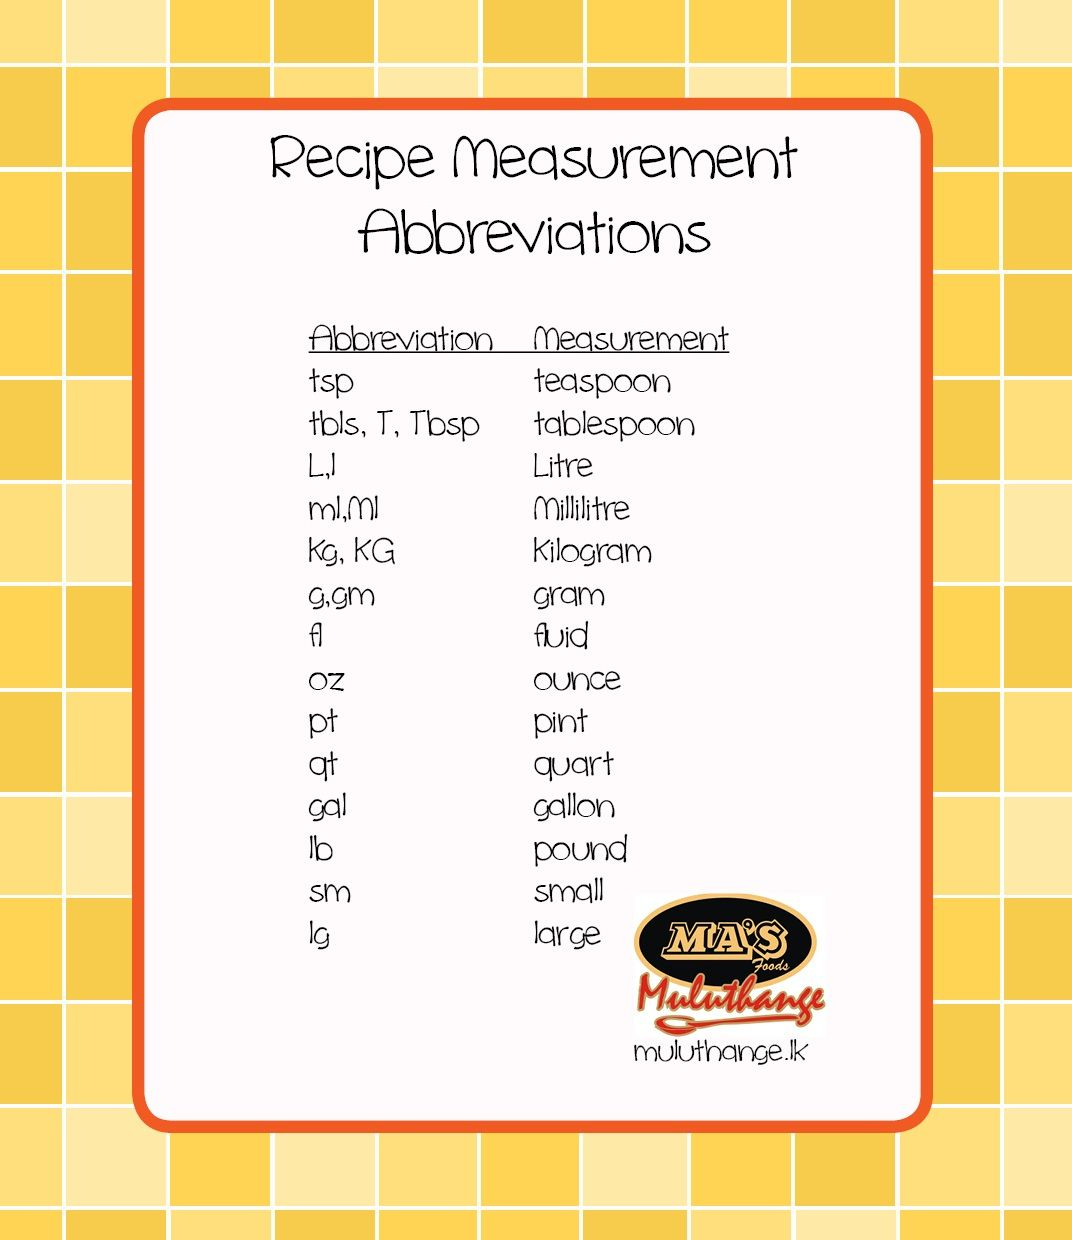 Common Recipe Measurement Abbreviations